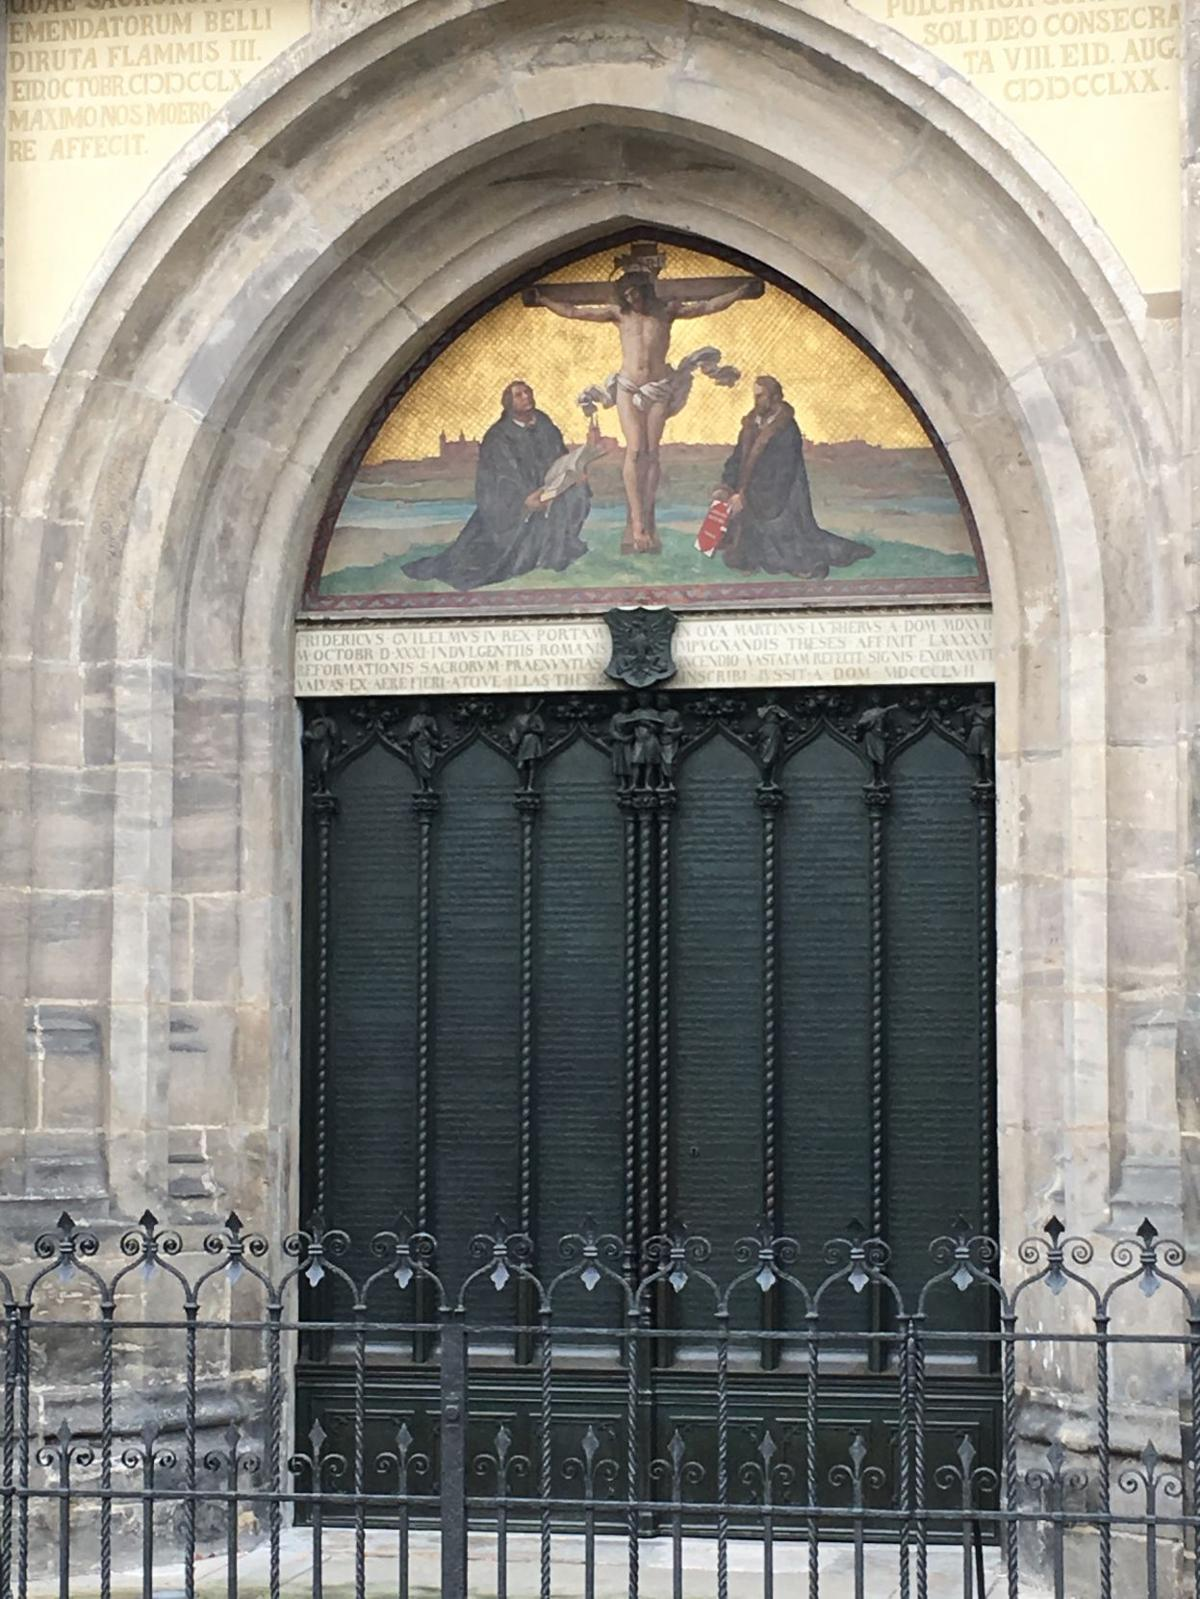 Decorating martin luther church door photos : How Martin Luther's 95 Theses altered history | Faith + Values ...